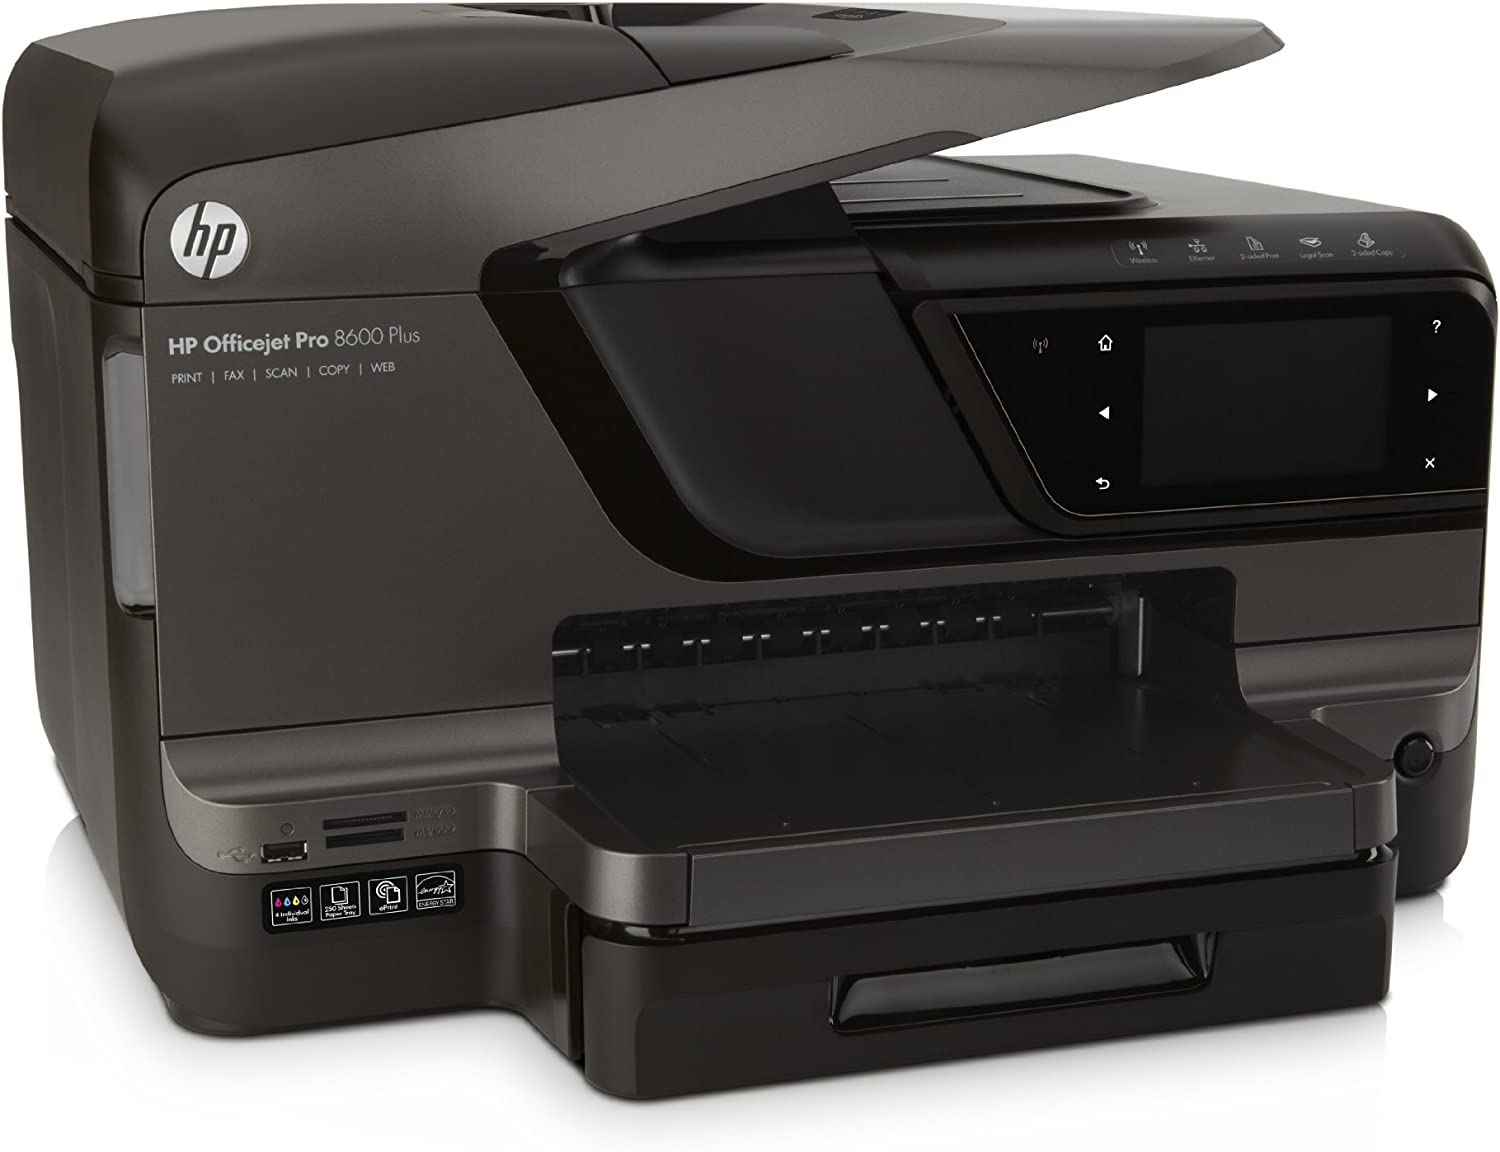 HP Officejet Pro 8600 Plus - Impresora multifunción: Amazon.es ...